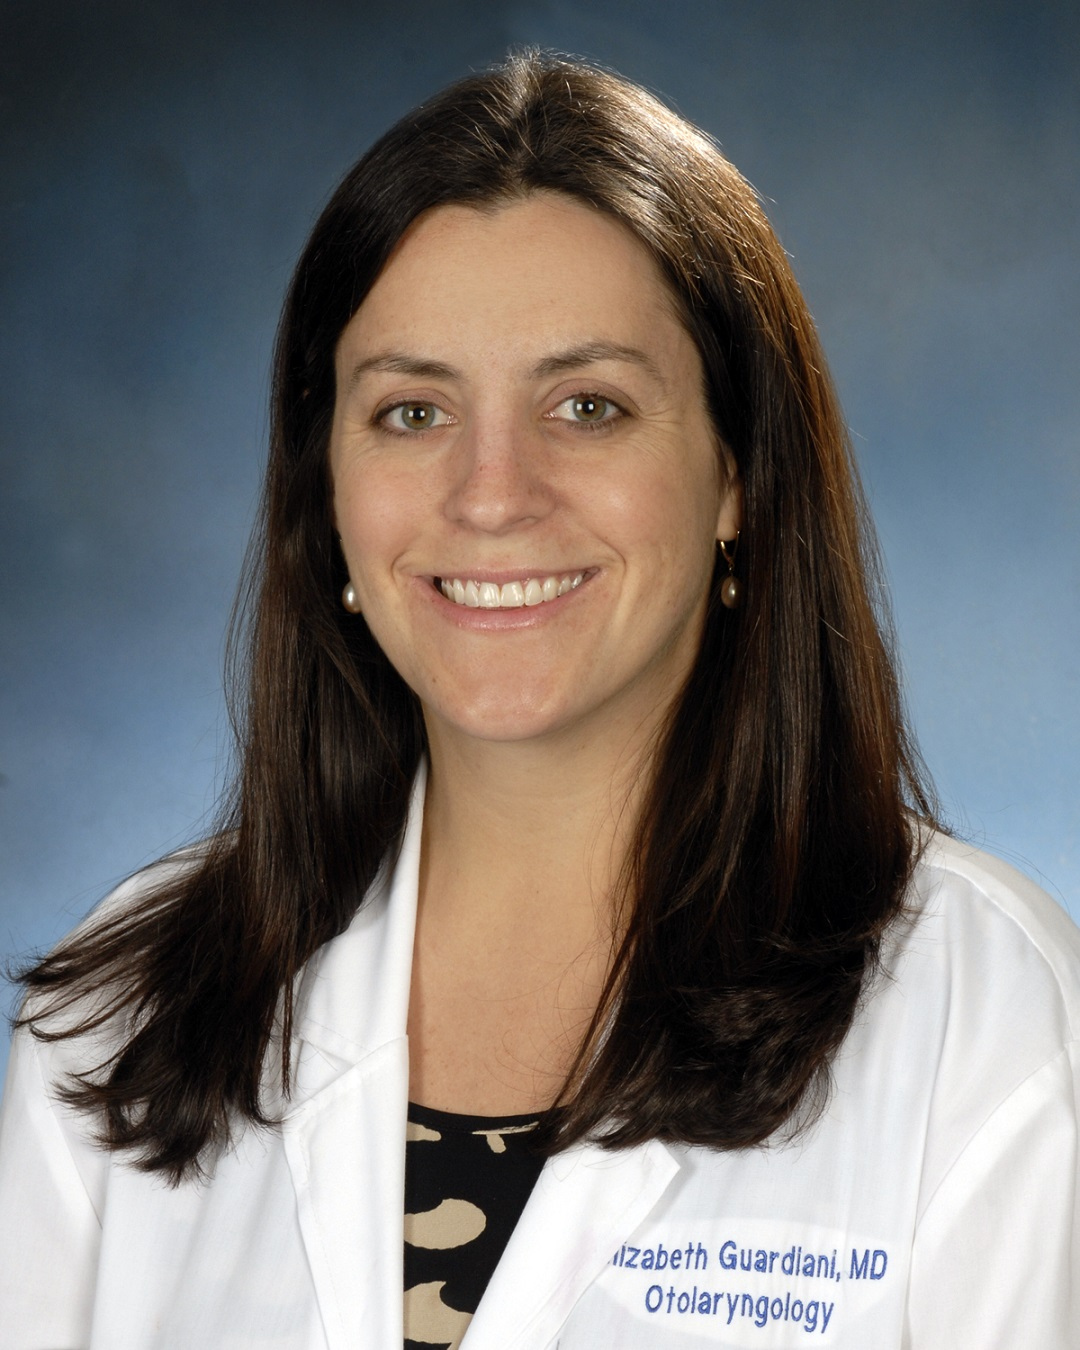 Elizabeth Guardiani, MD